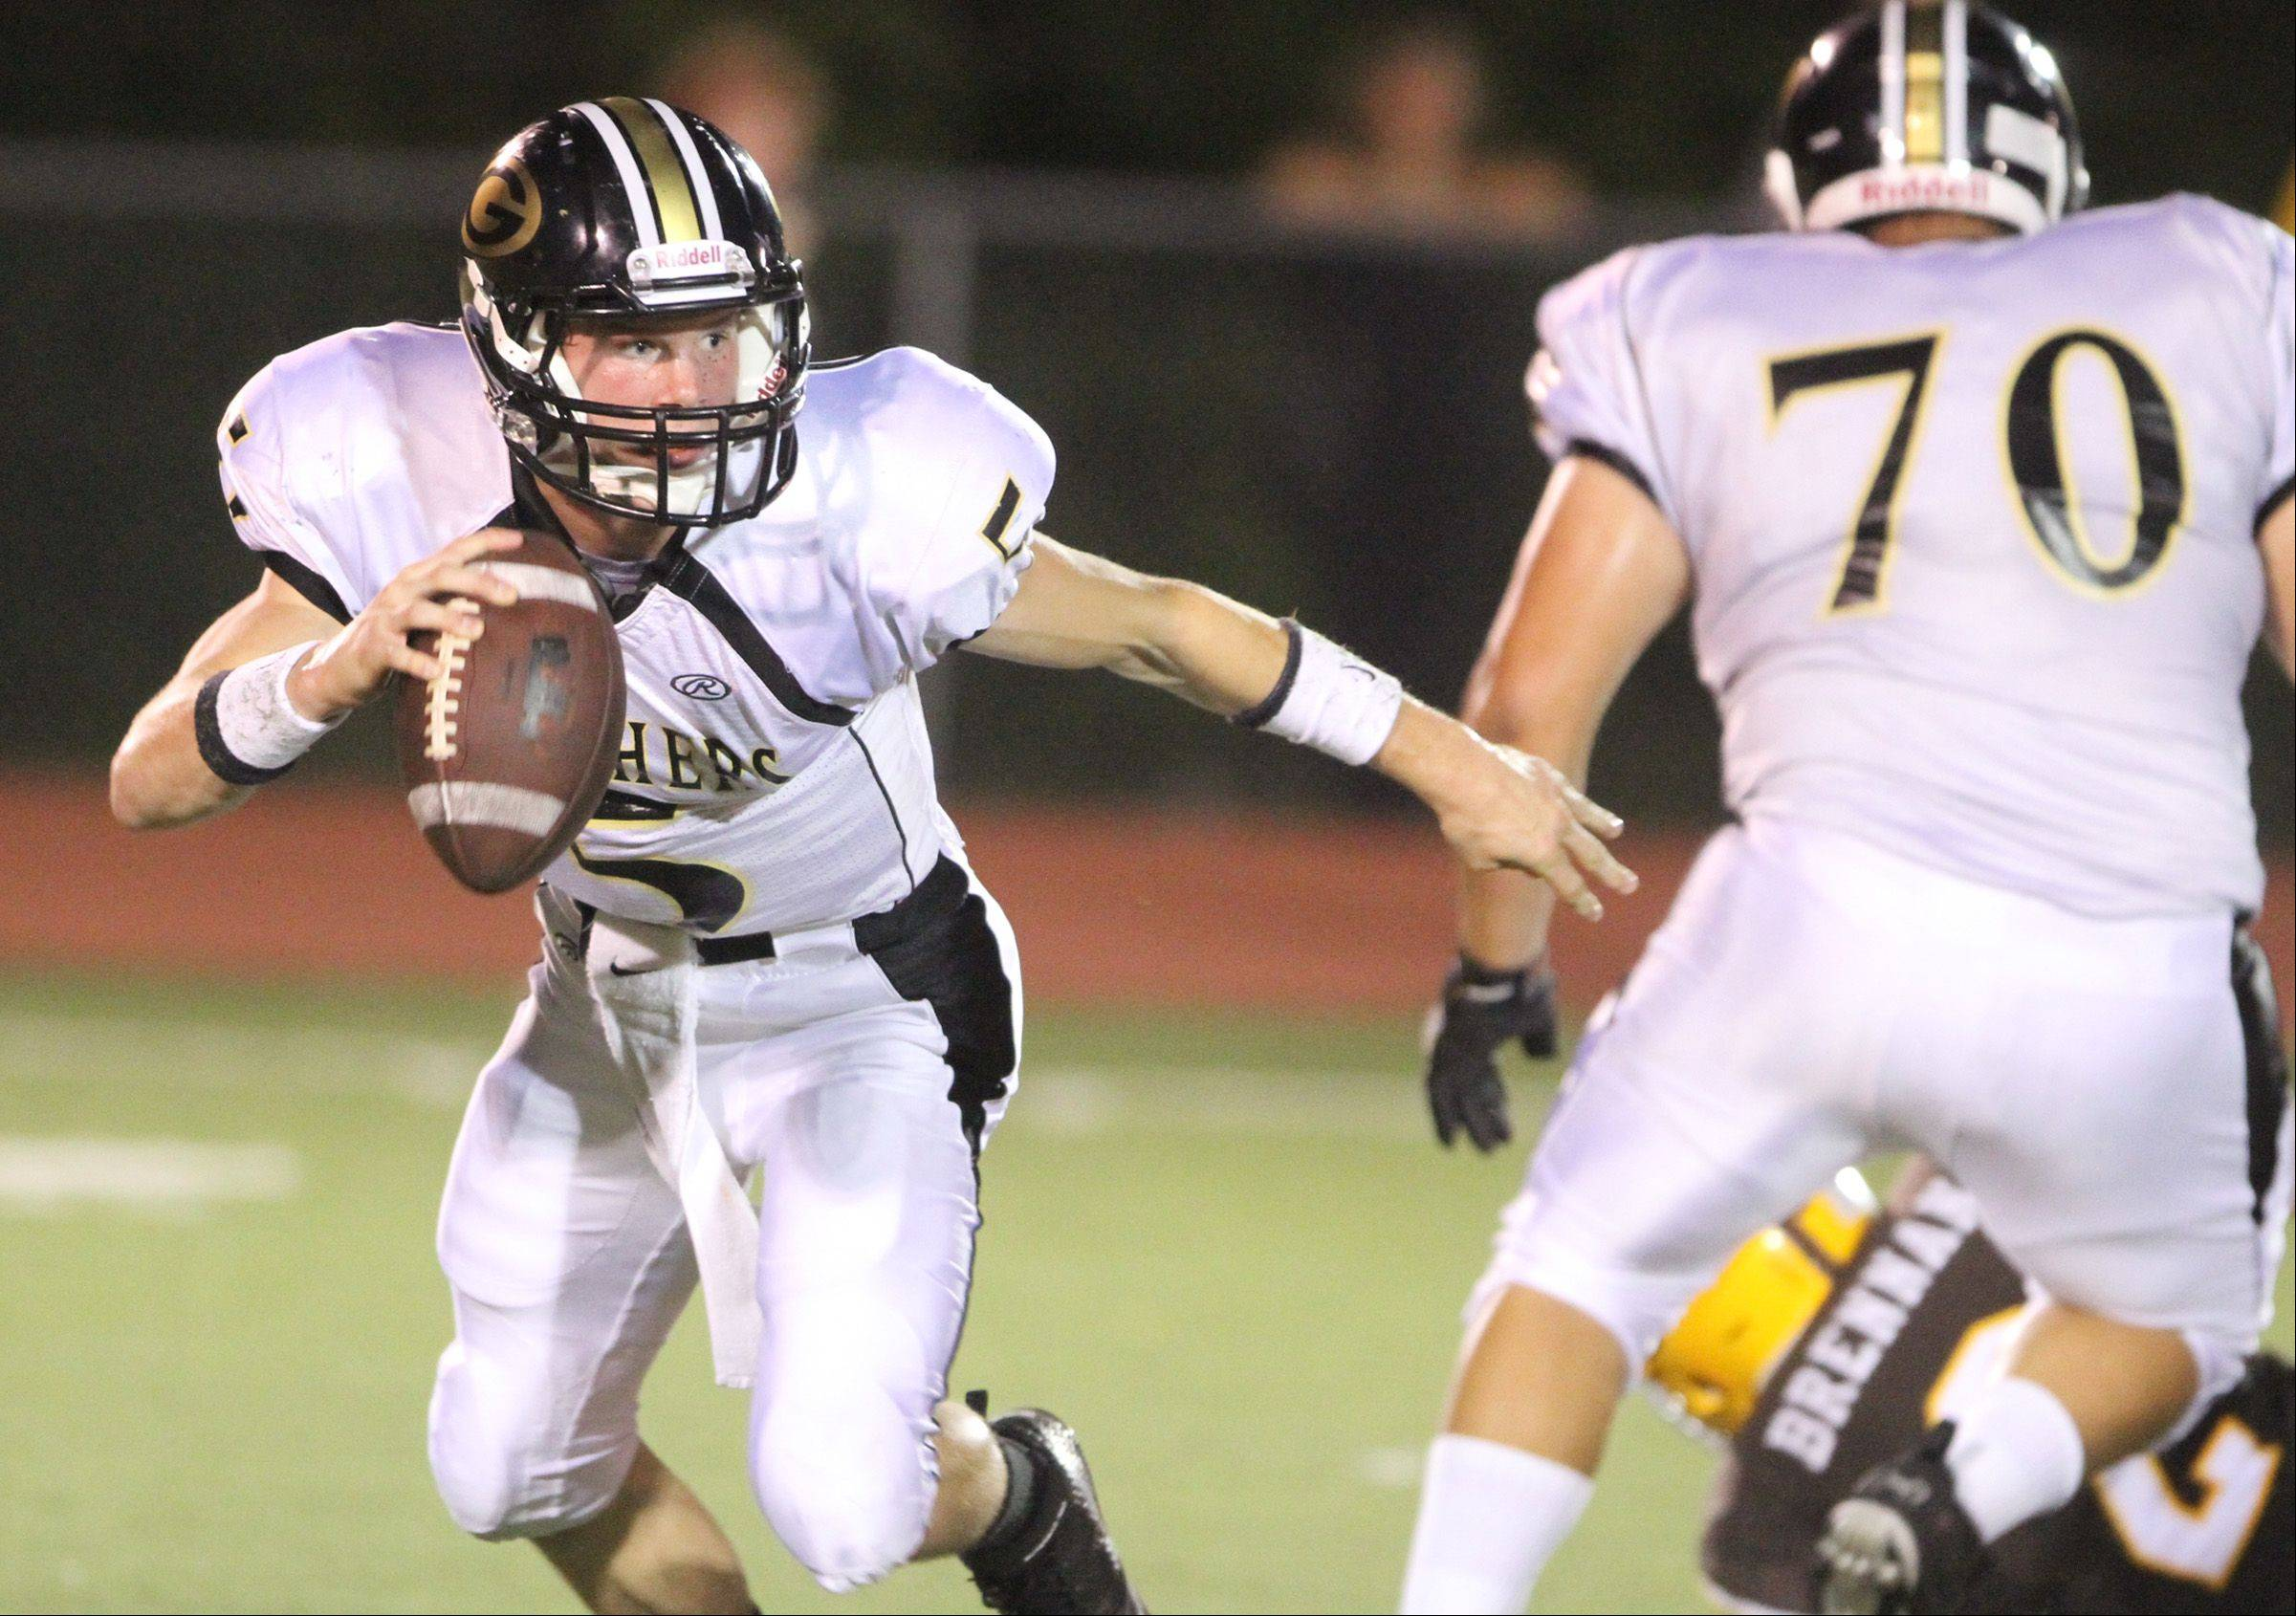 Glenbard North quarterback Brian Murphy scrambles with the ball.